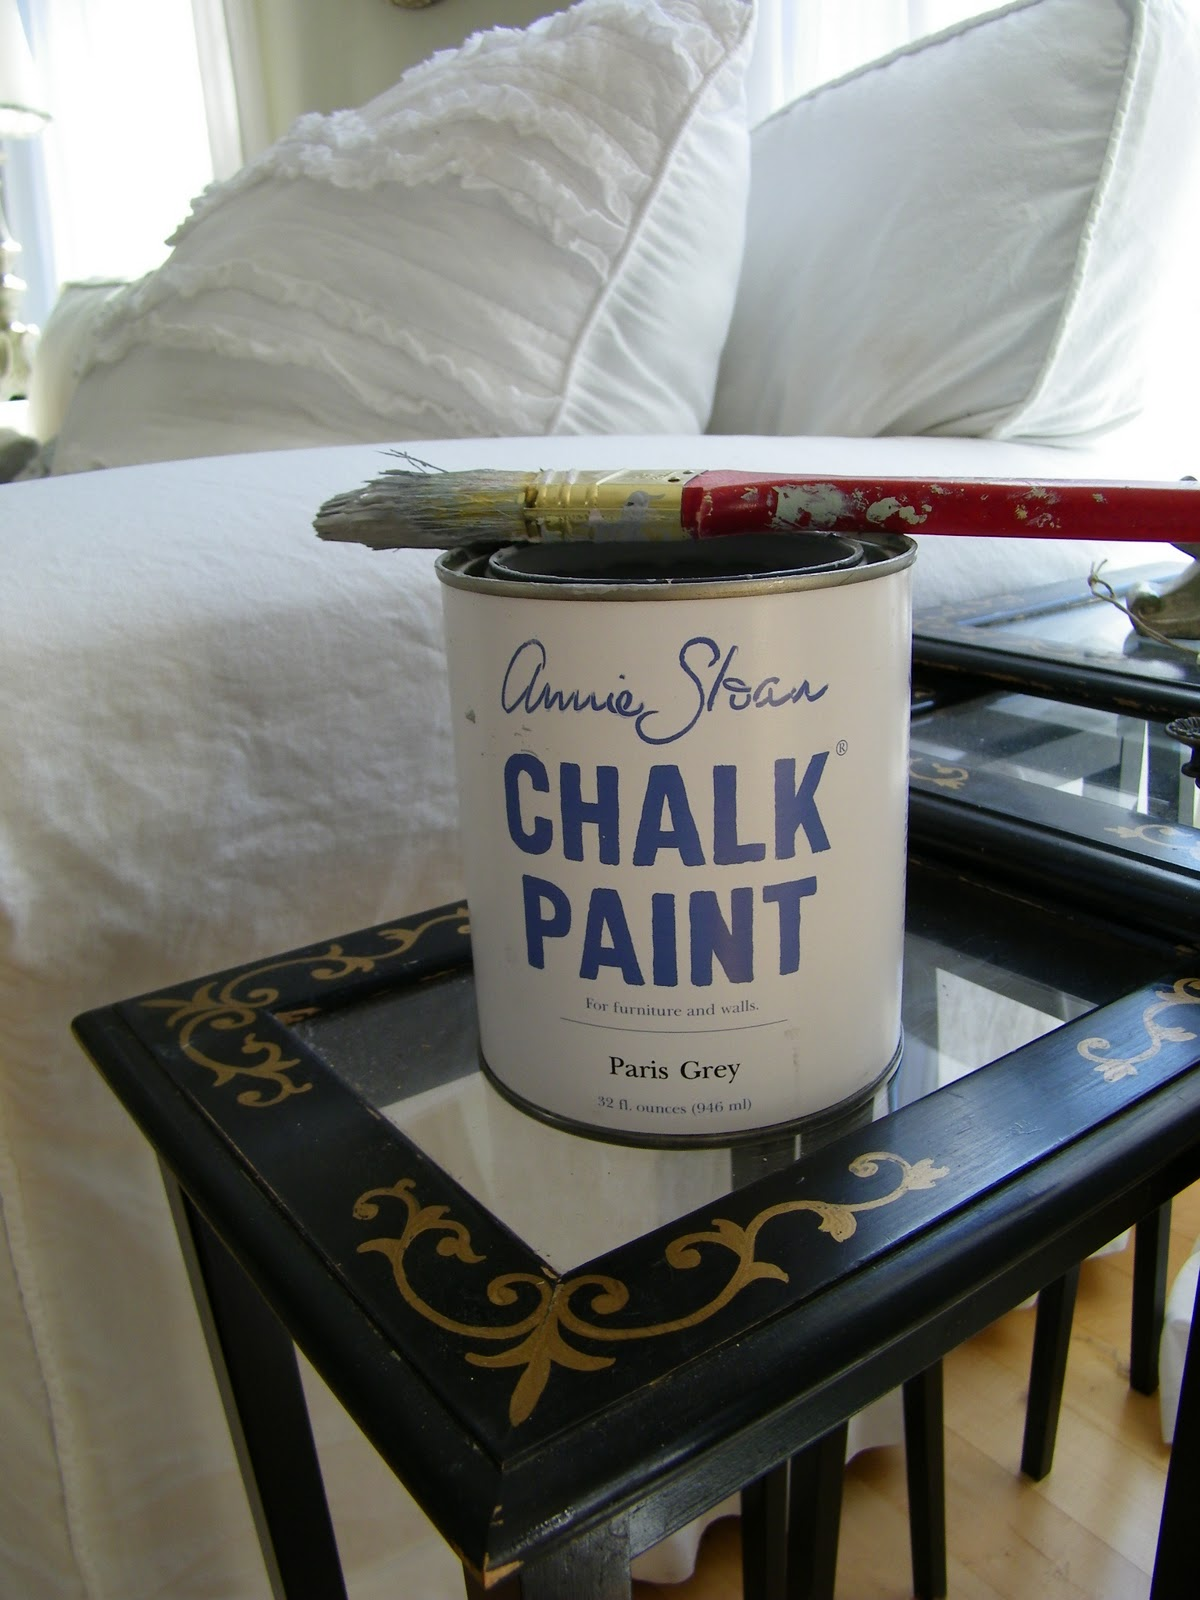 Maison Decor Updates on Man Cave and Chalk Paint